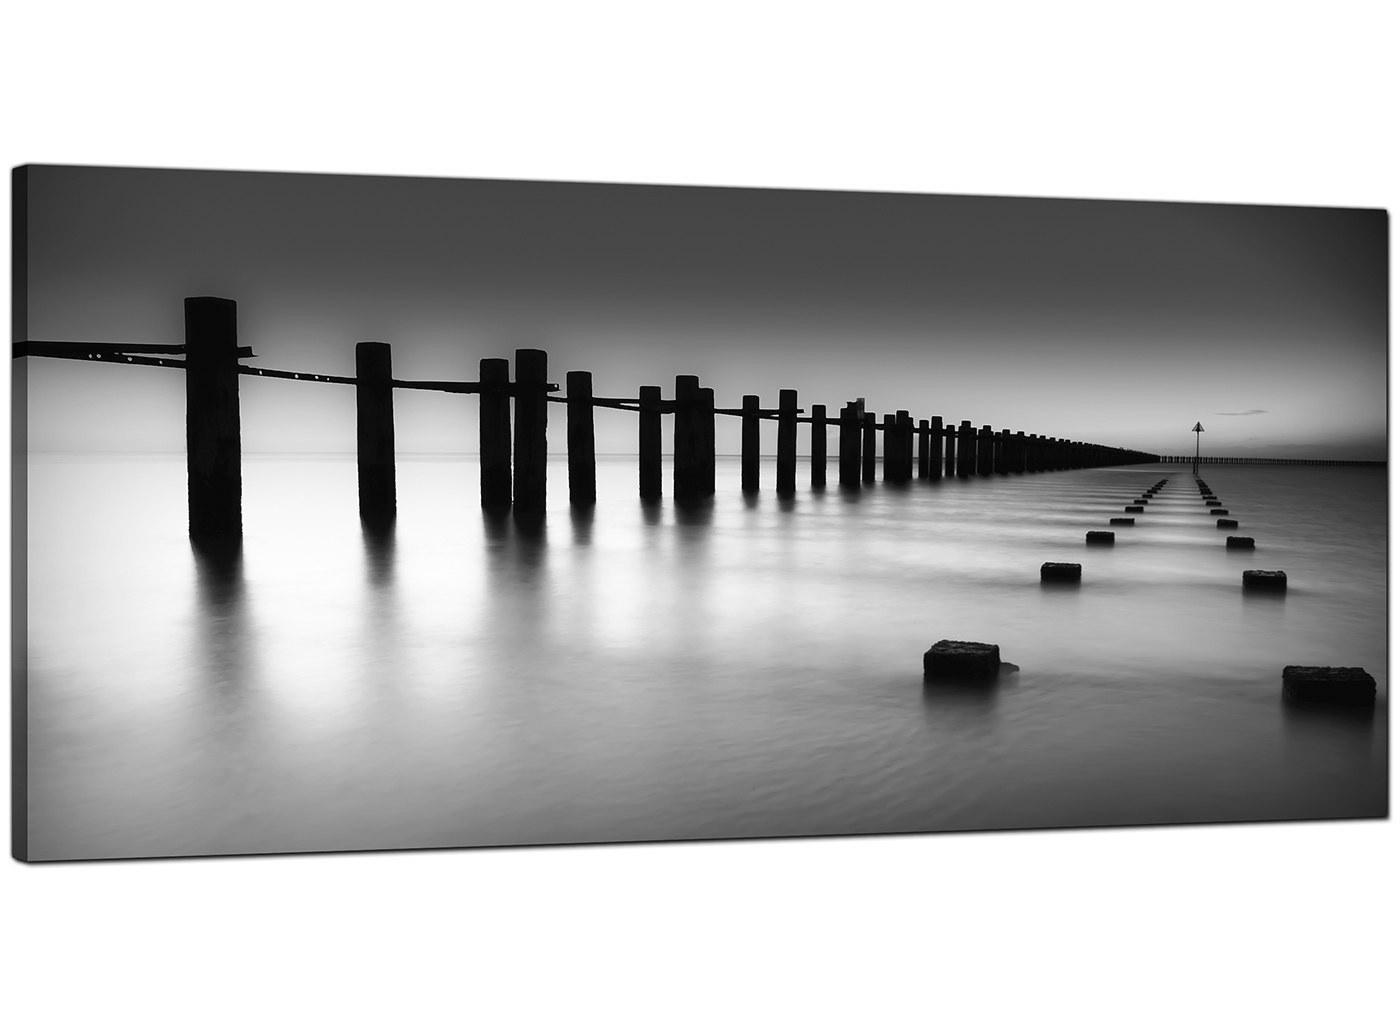 Modern Black And White Canvas Art Of The Sea Regarding Newest Black And White Large Canvas Wall Art (Gallery 3 of 20)